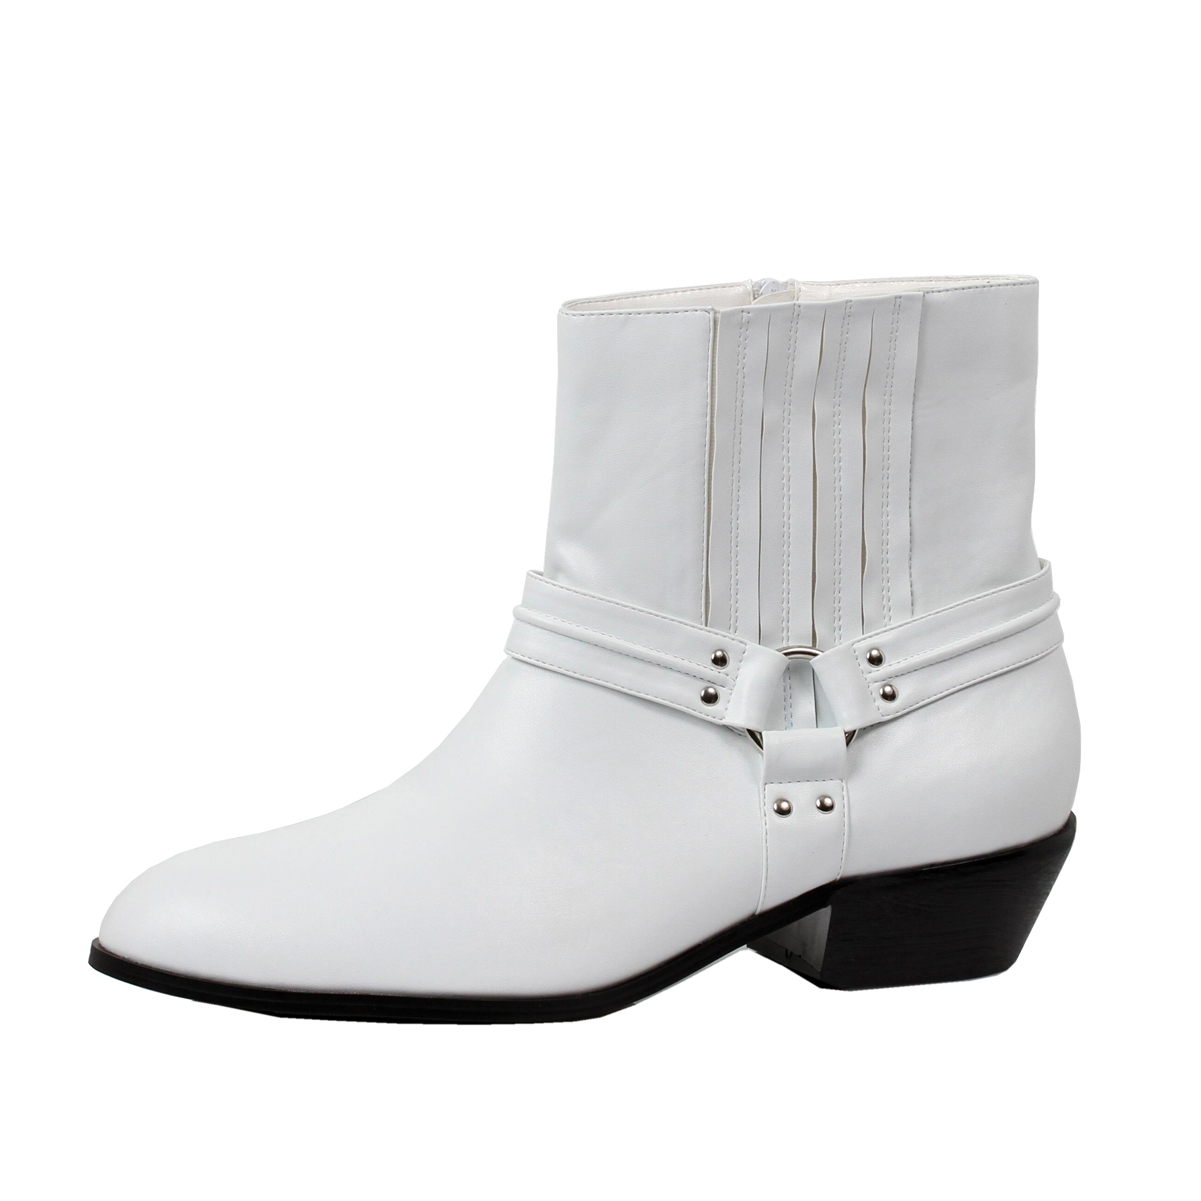 mens ankle boots white western calf booties 1 12 inch heel zipper mens sizing walmartcom